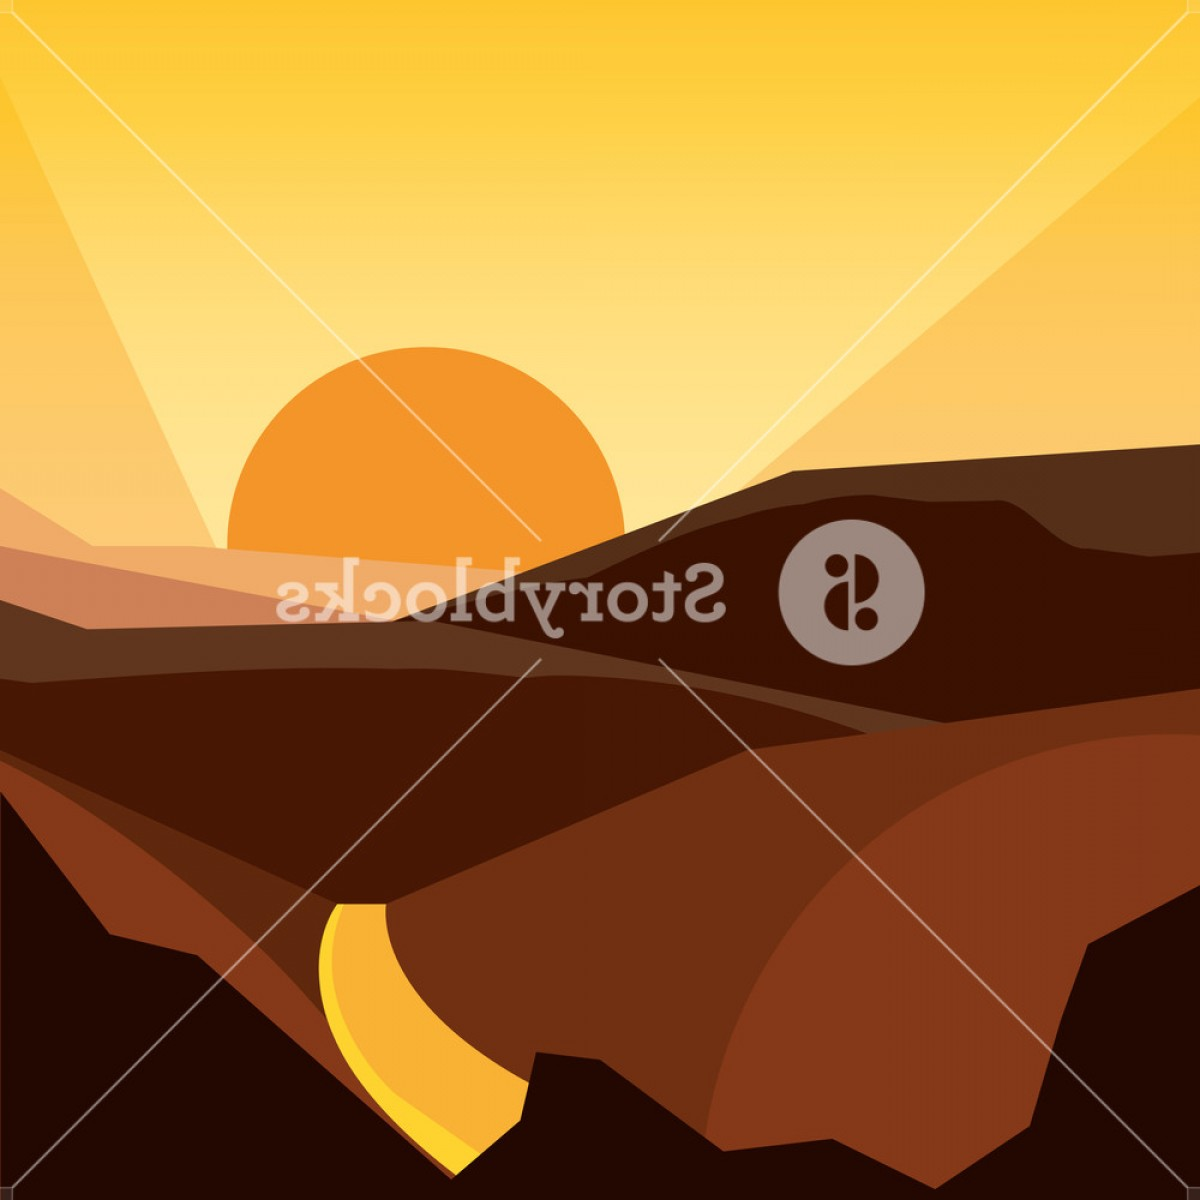 Sunset Road Background Vector: Abstract Image Of A Sunset Or Dawn Sun Over The Road At The Background Colorful Design Vector Illustration Hzcbtmnmimjfljwn